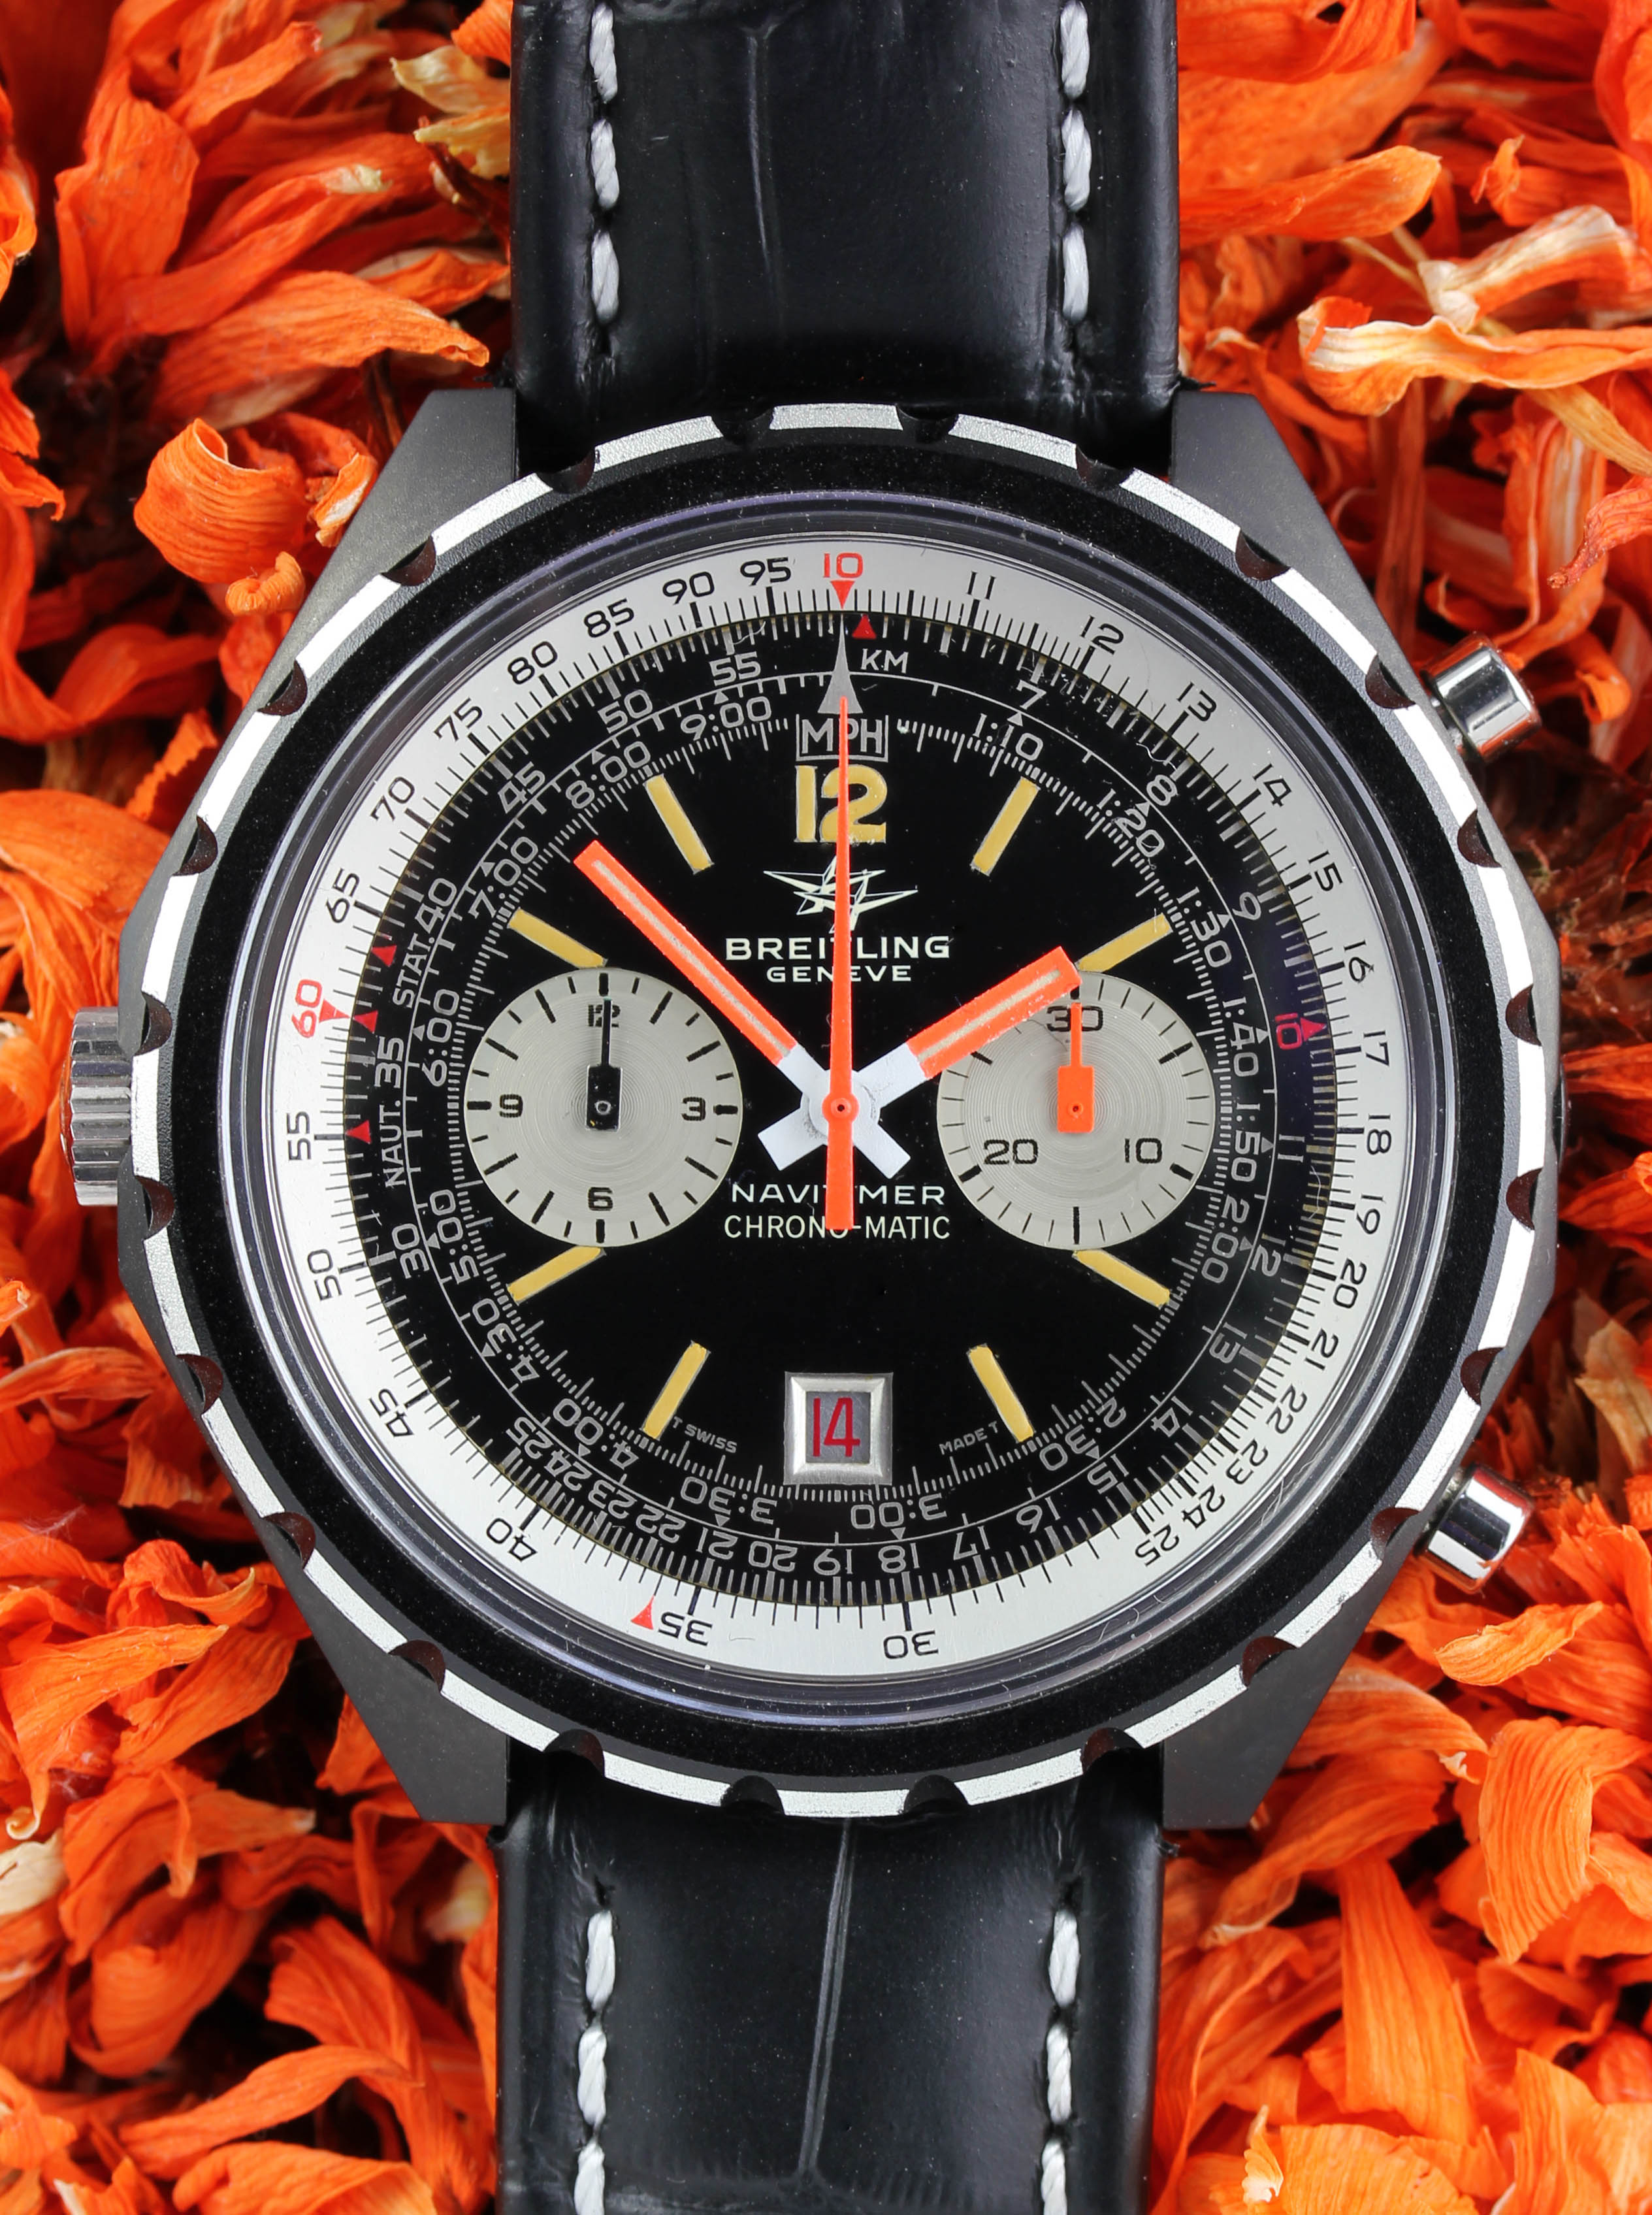 """Extremely rare BREITLING Navitimer Chrono-Matic in a """"Black Line"""" stainless steel case, ref. 1806"""